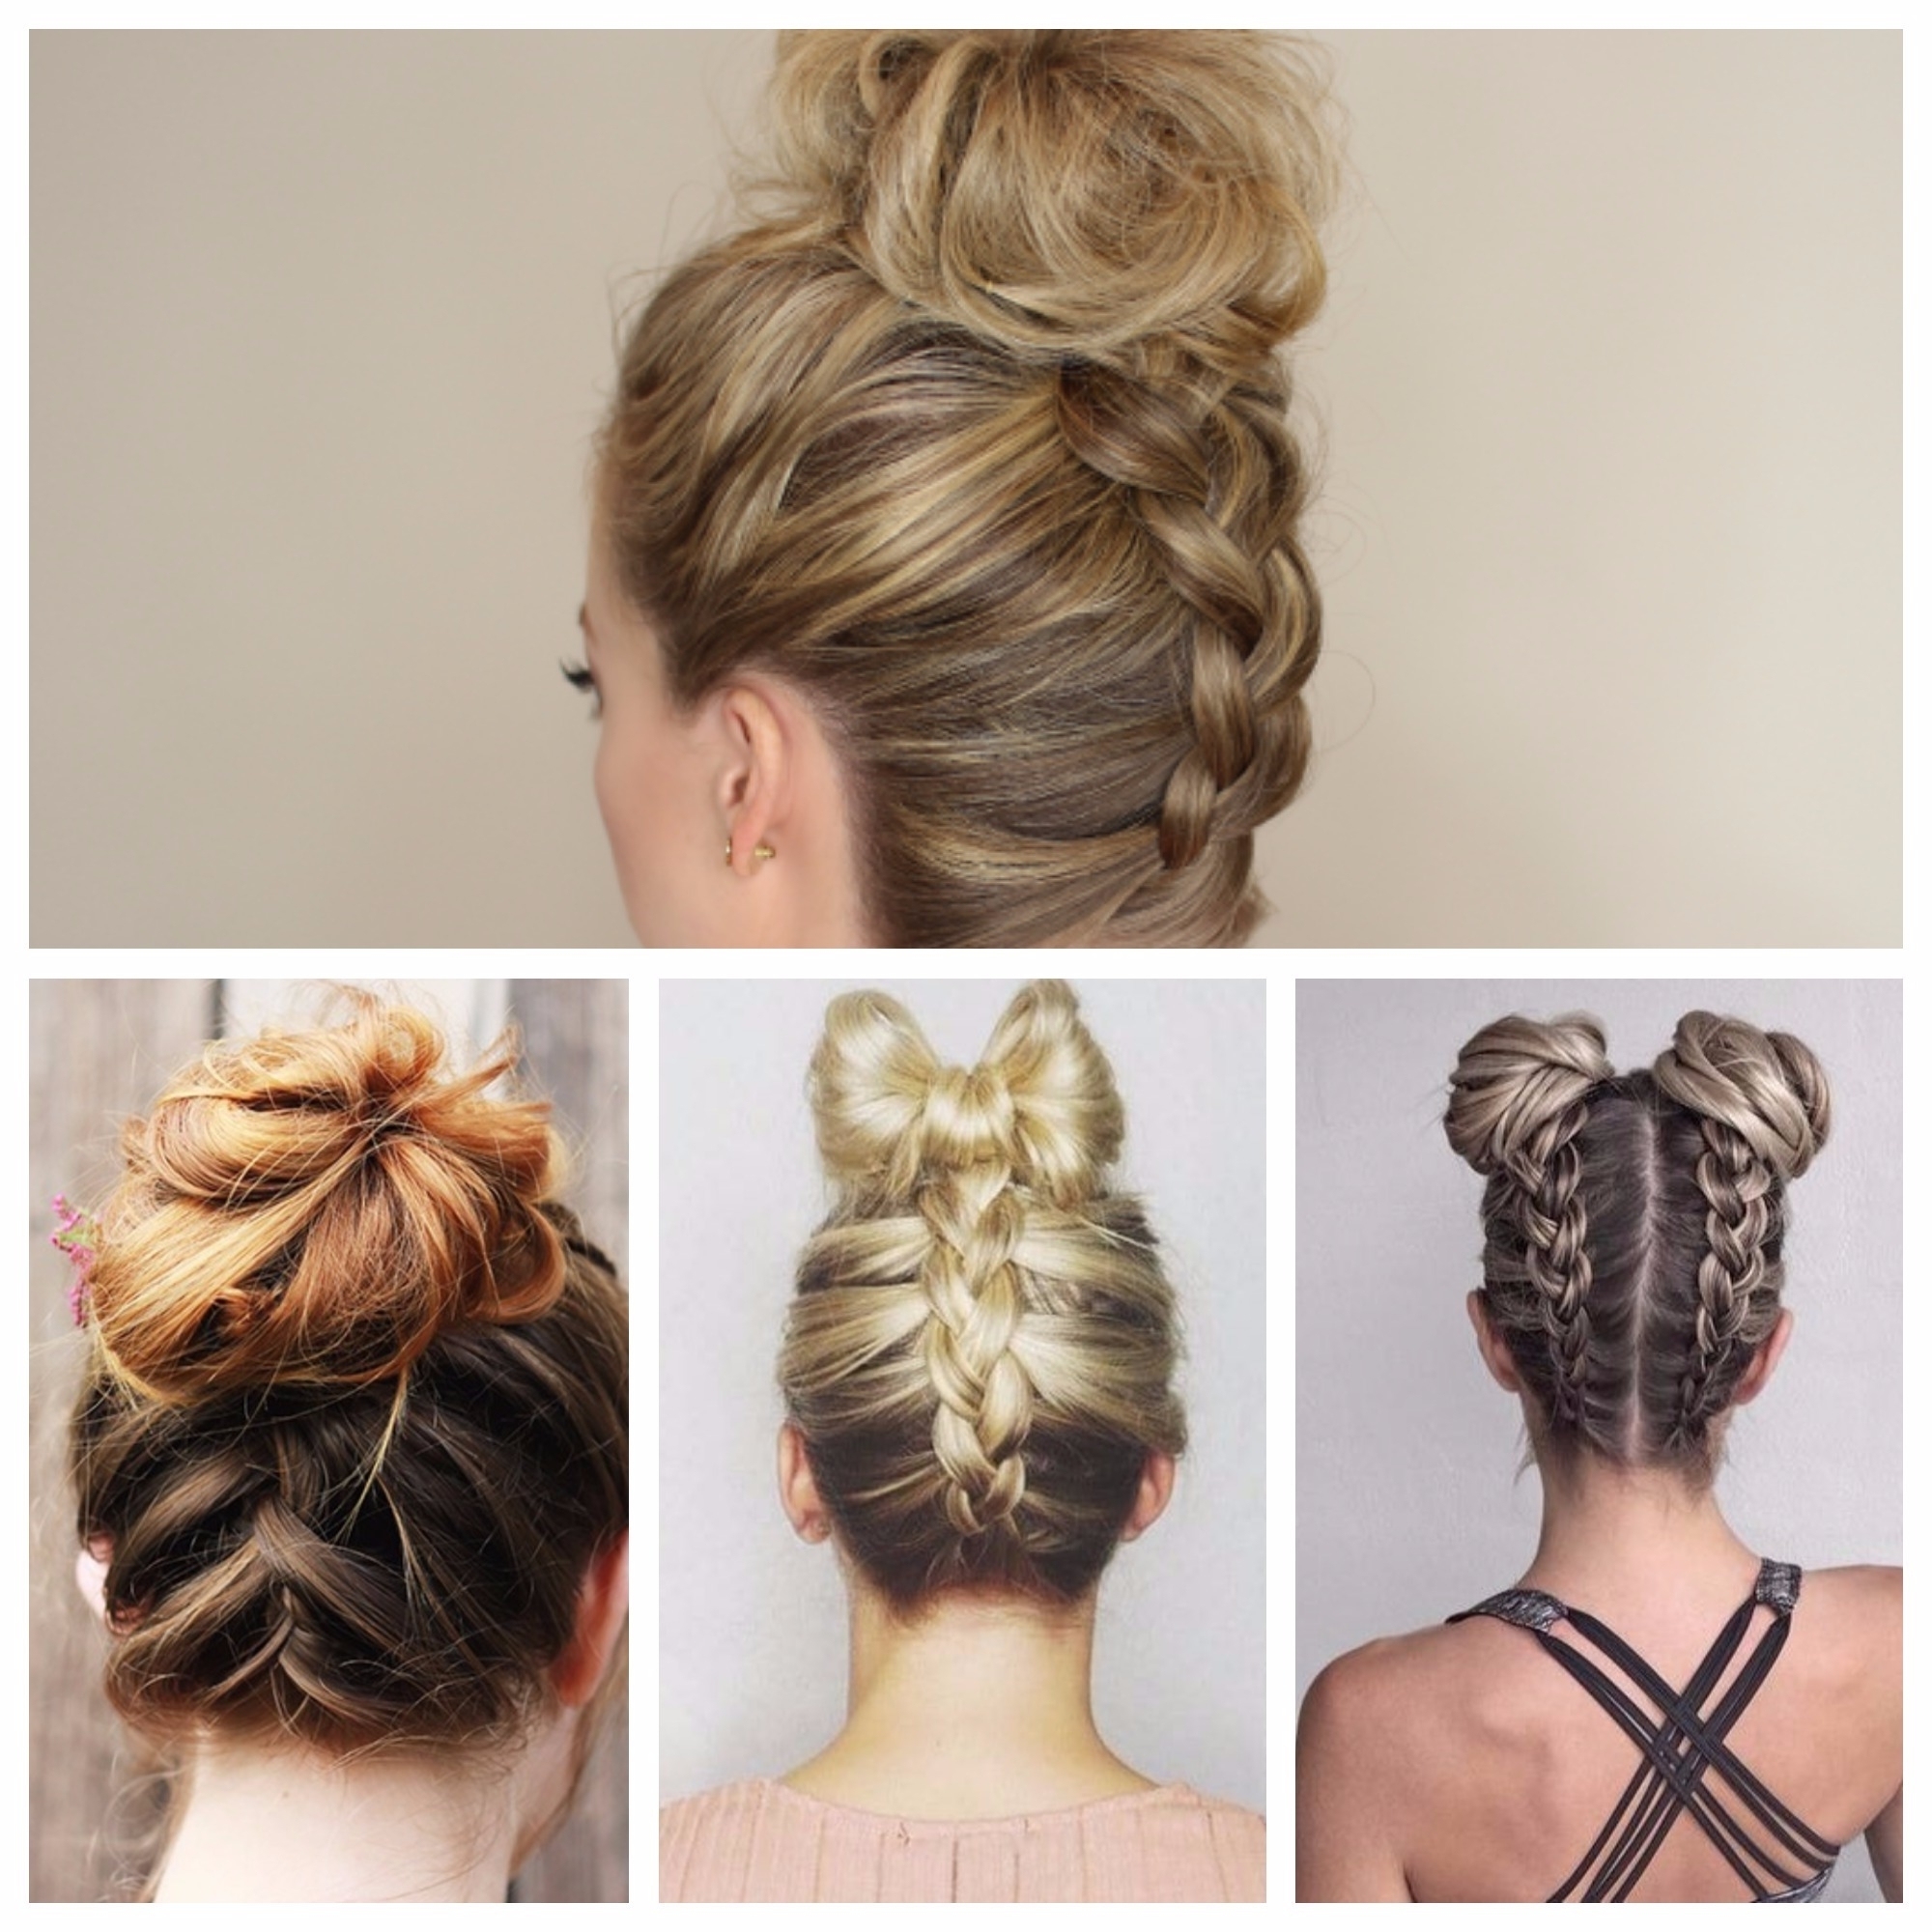 Latest Bun Braided Hairstyles Within Upside Down French Braid Hairstyles For 2018 – New Hairstyles (View 10 of 15)